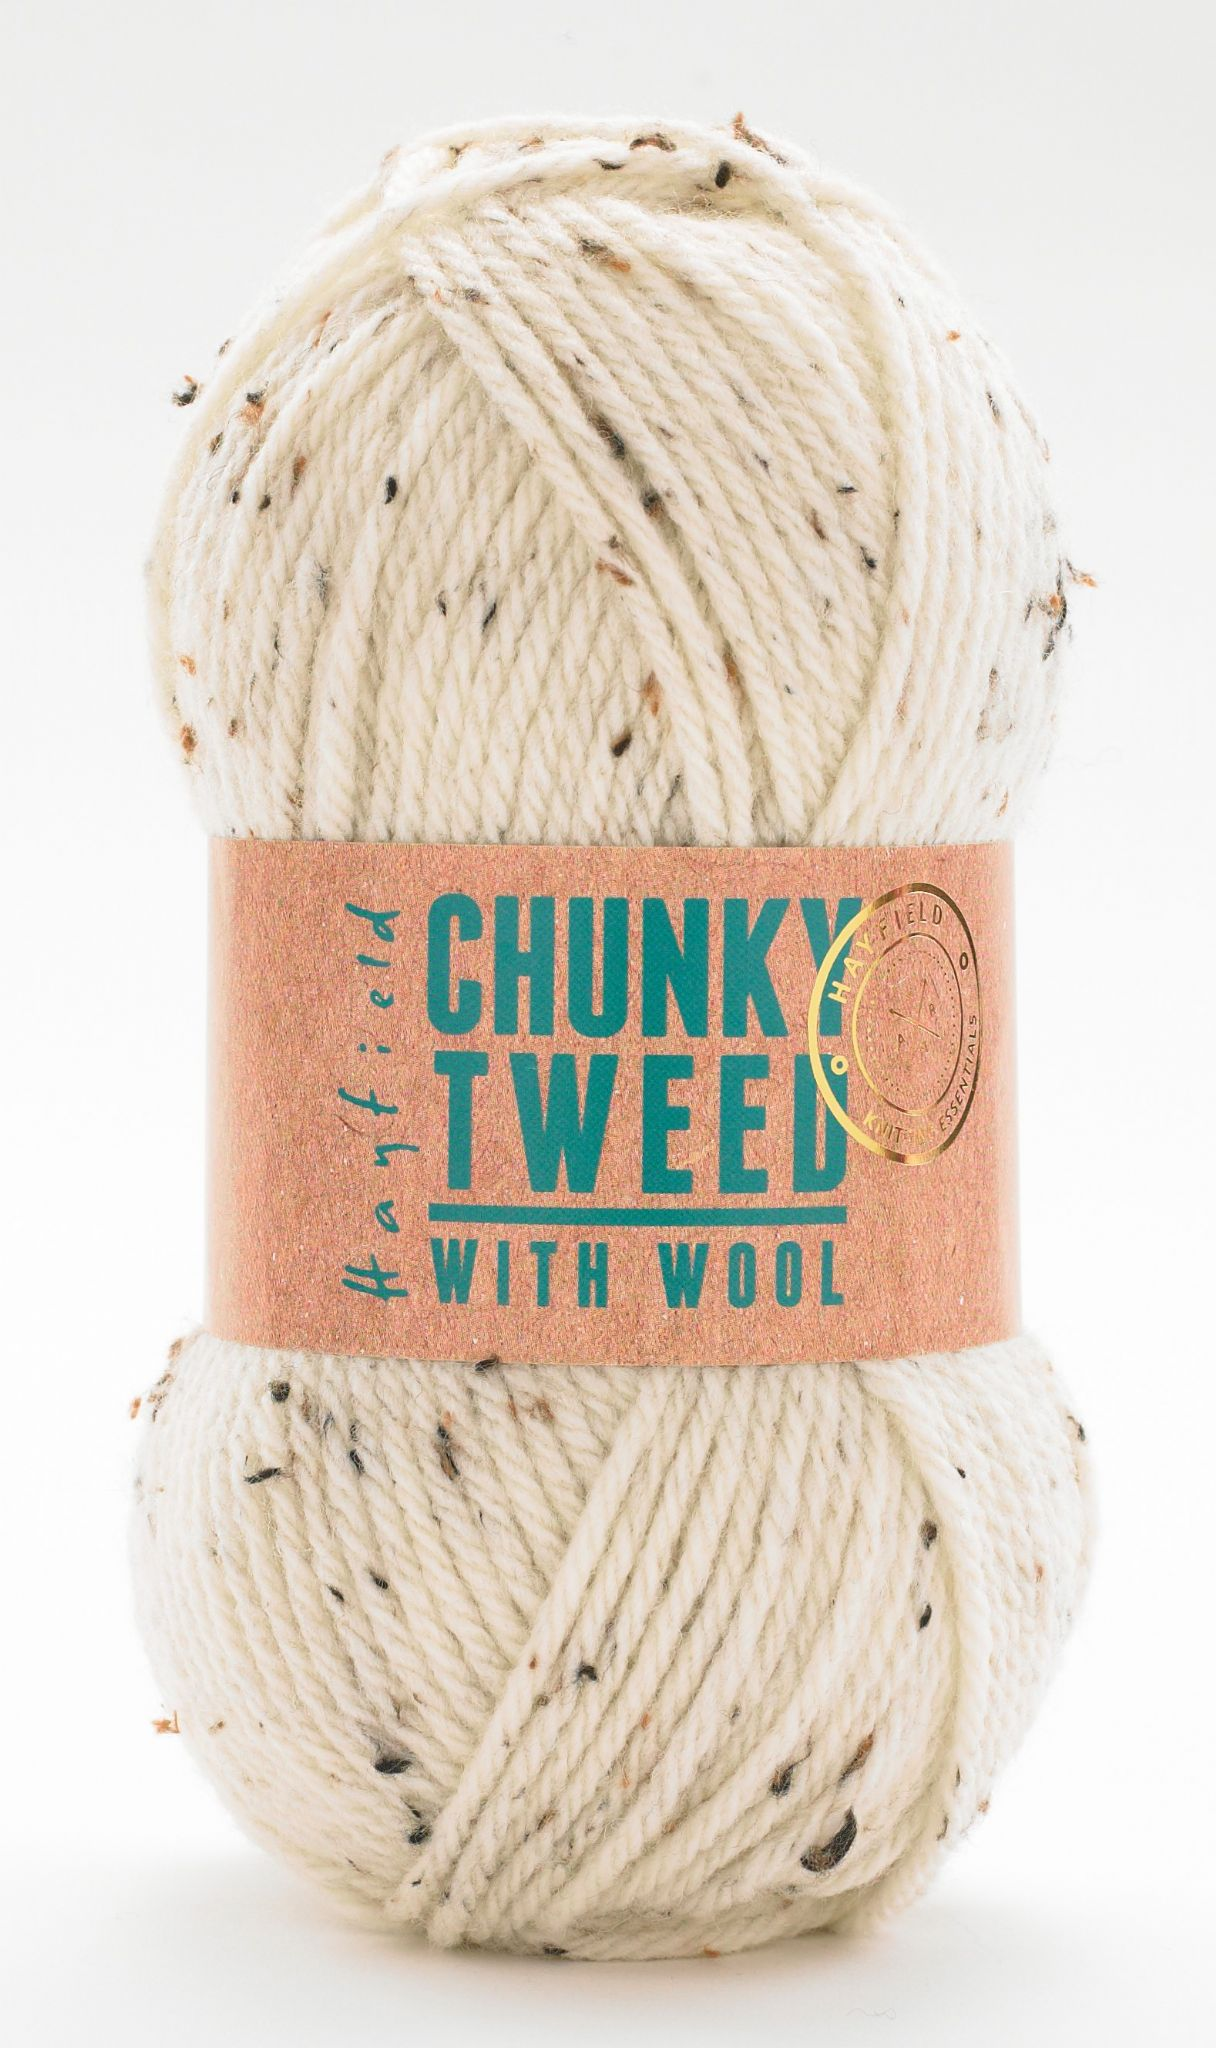 Hayfield Chunky Tweed 100g - 180 Crigglestone